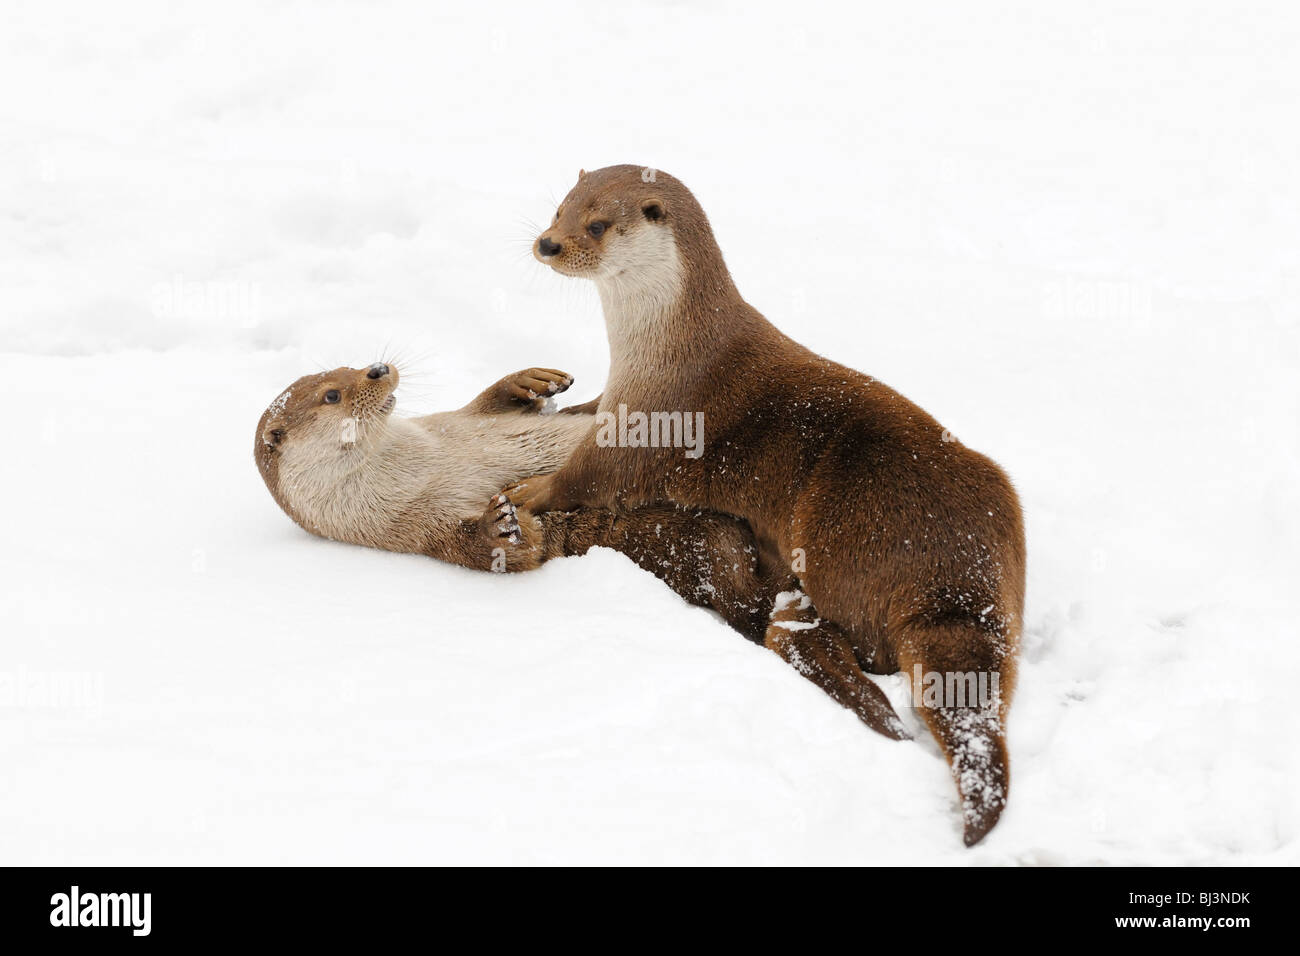 Otter (Lutra lutra) playing in the snow - Stock Image